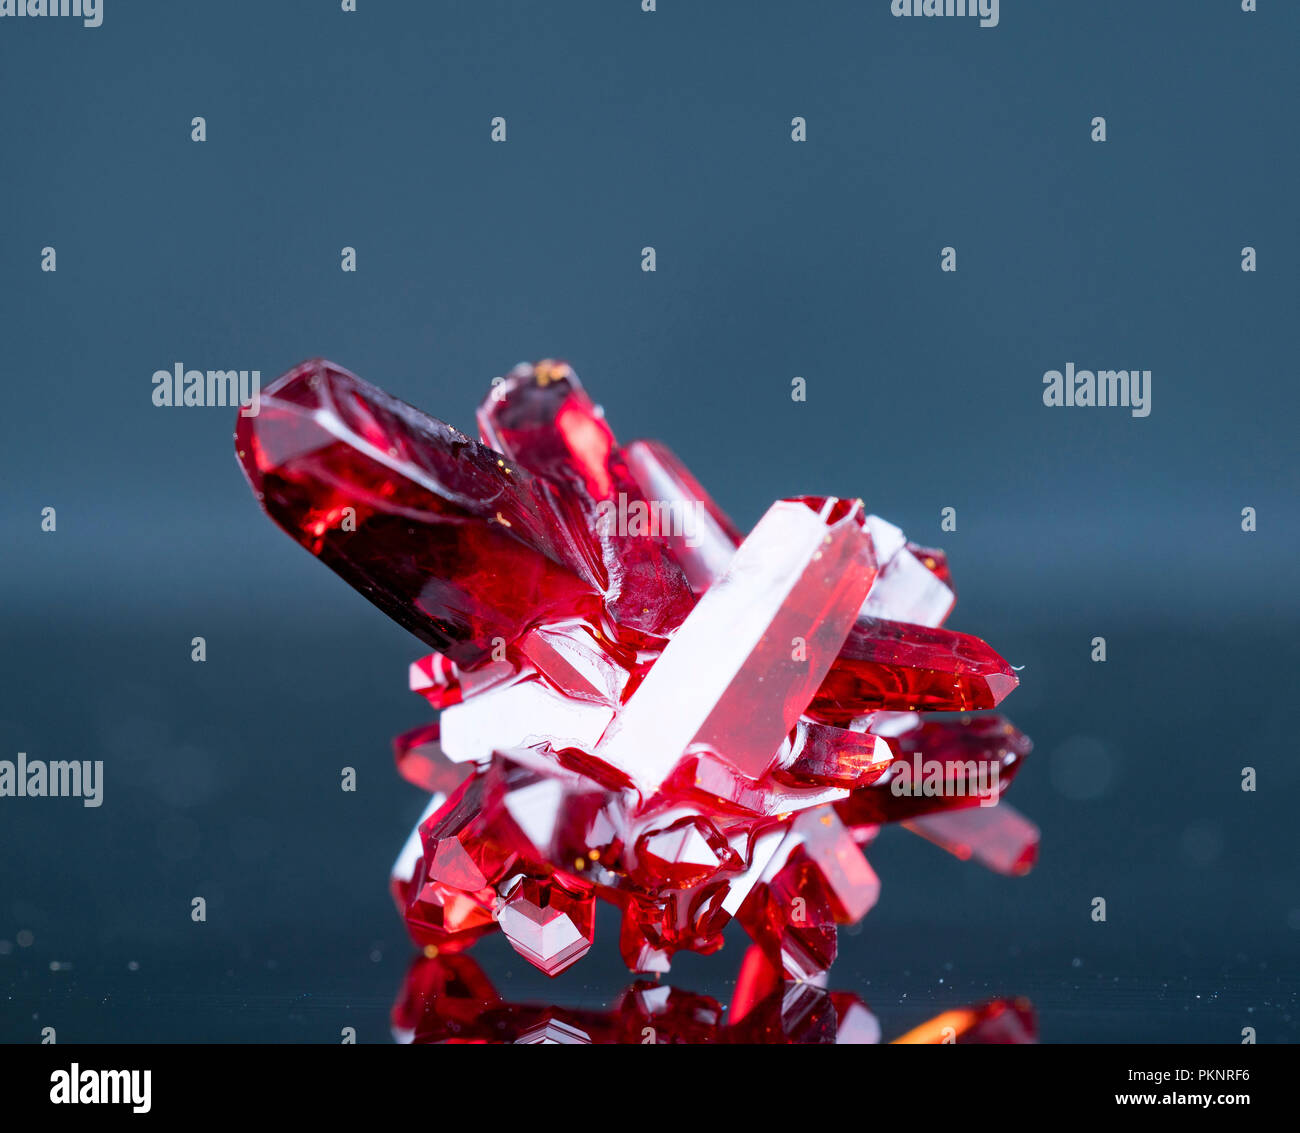 Red crystals. - Stock Image